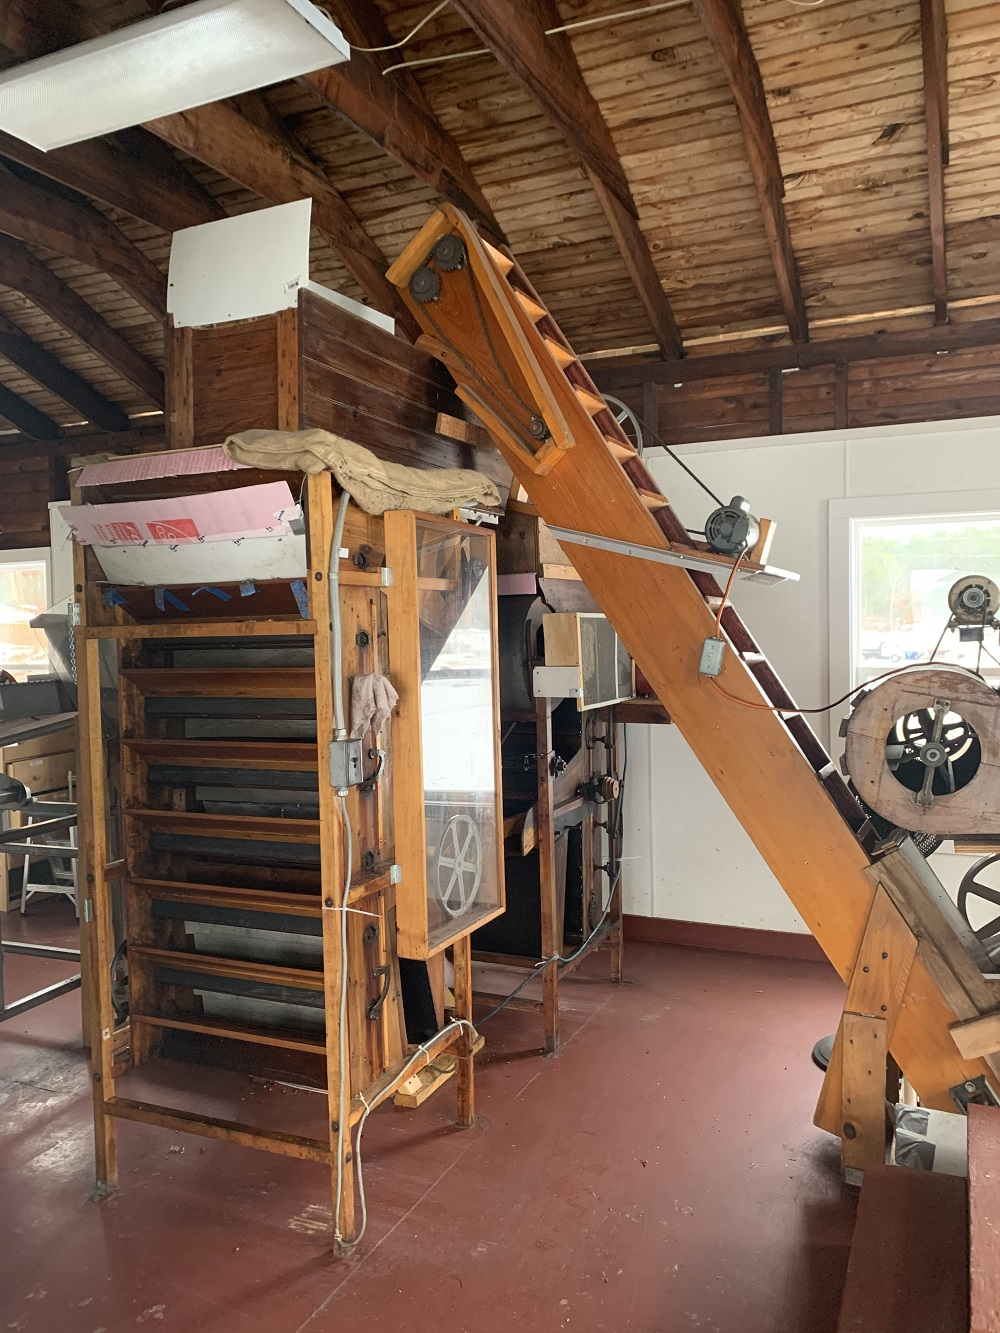 A mechanical sorter at Fresh Meadows Farm is pictured here